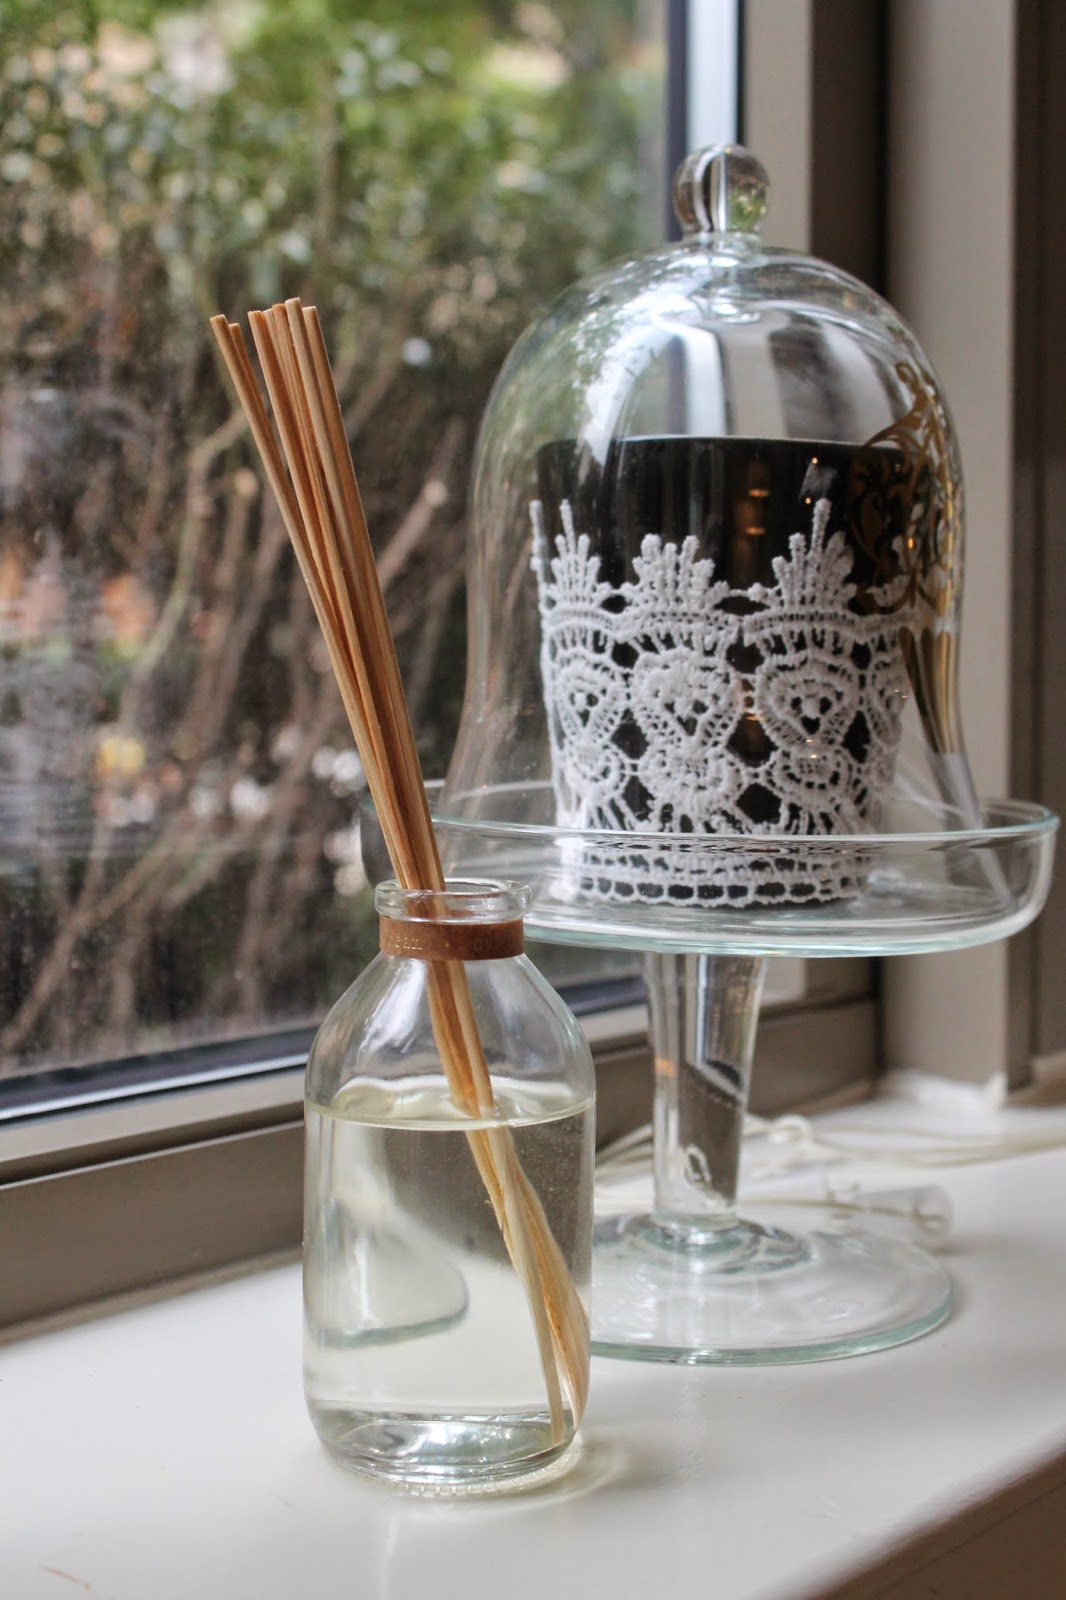 Glamista Home Product Review Pottery Barn Diffuser